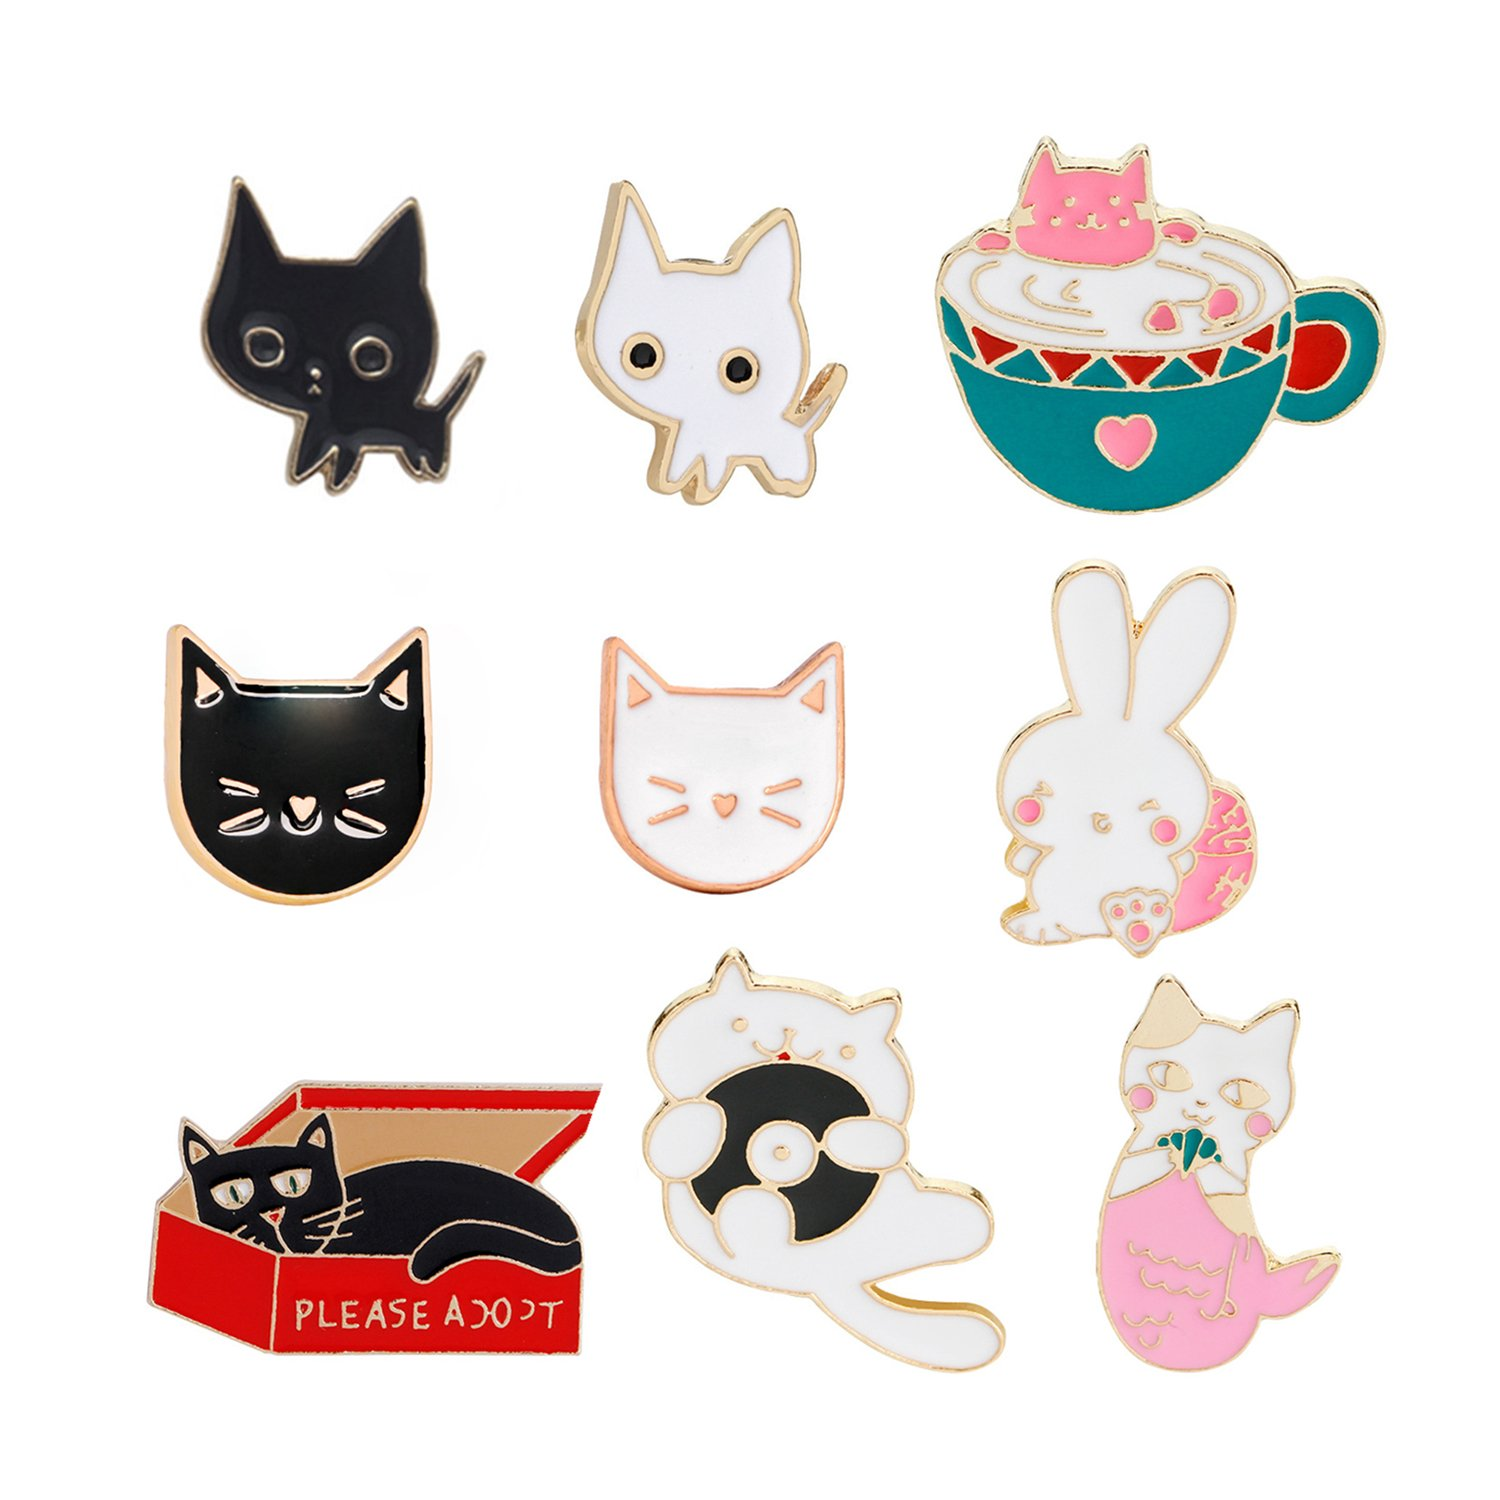 Lovely Cat Brooch Set Cute Cartoon Kitty Rabbit Brooch Pins Enamel Brooches Lapel Pins Clothes Bags Decoration Gifts for Woemn Girls by JoinLove JoinLove Jewelry MXZDMDF-79